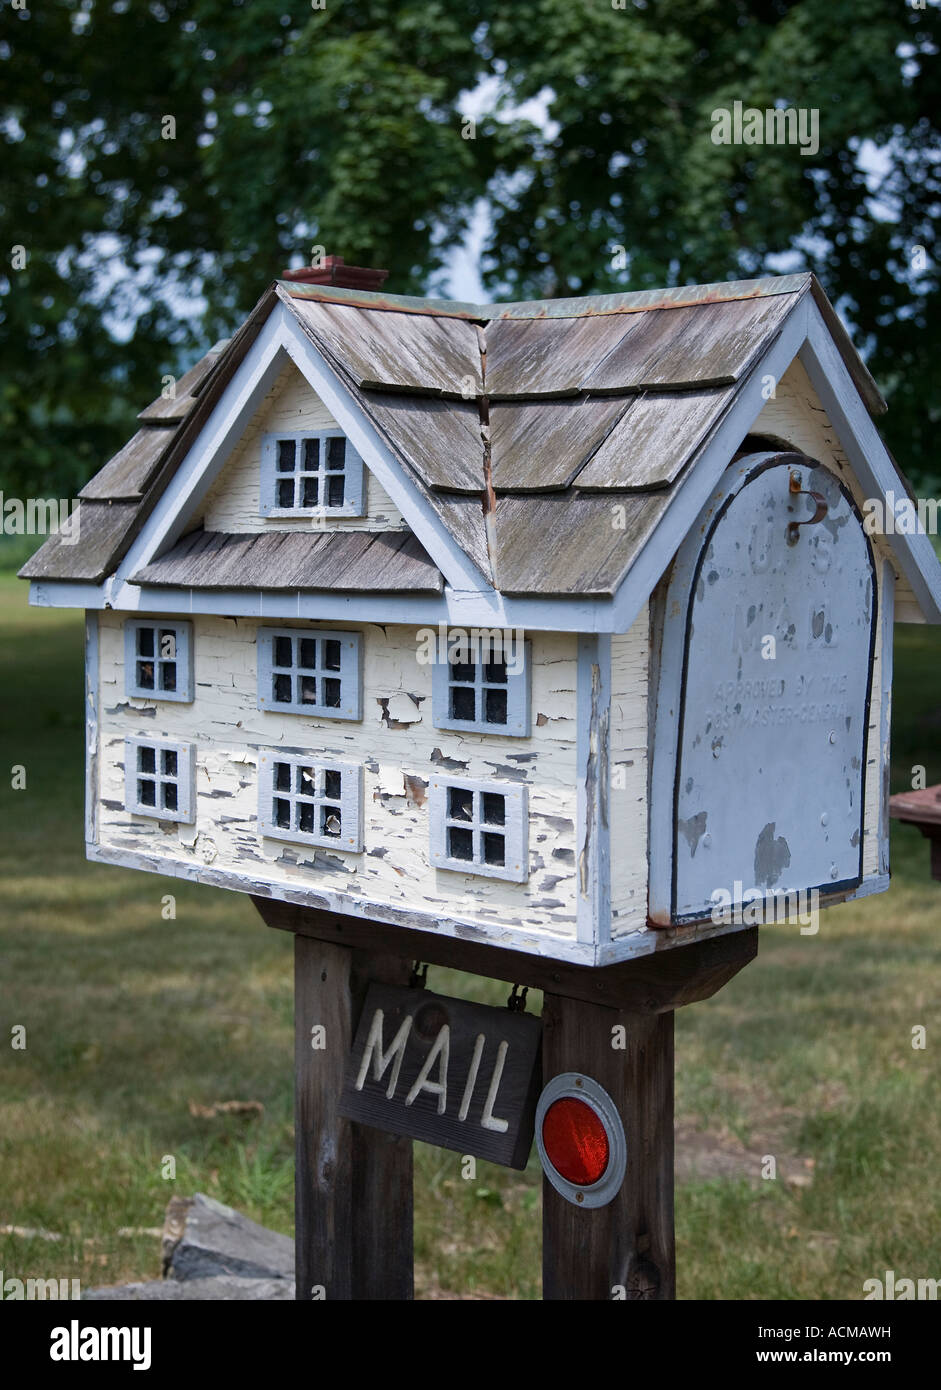 Mailbox In The Shape Of A Small House Stock Photo